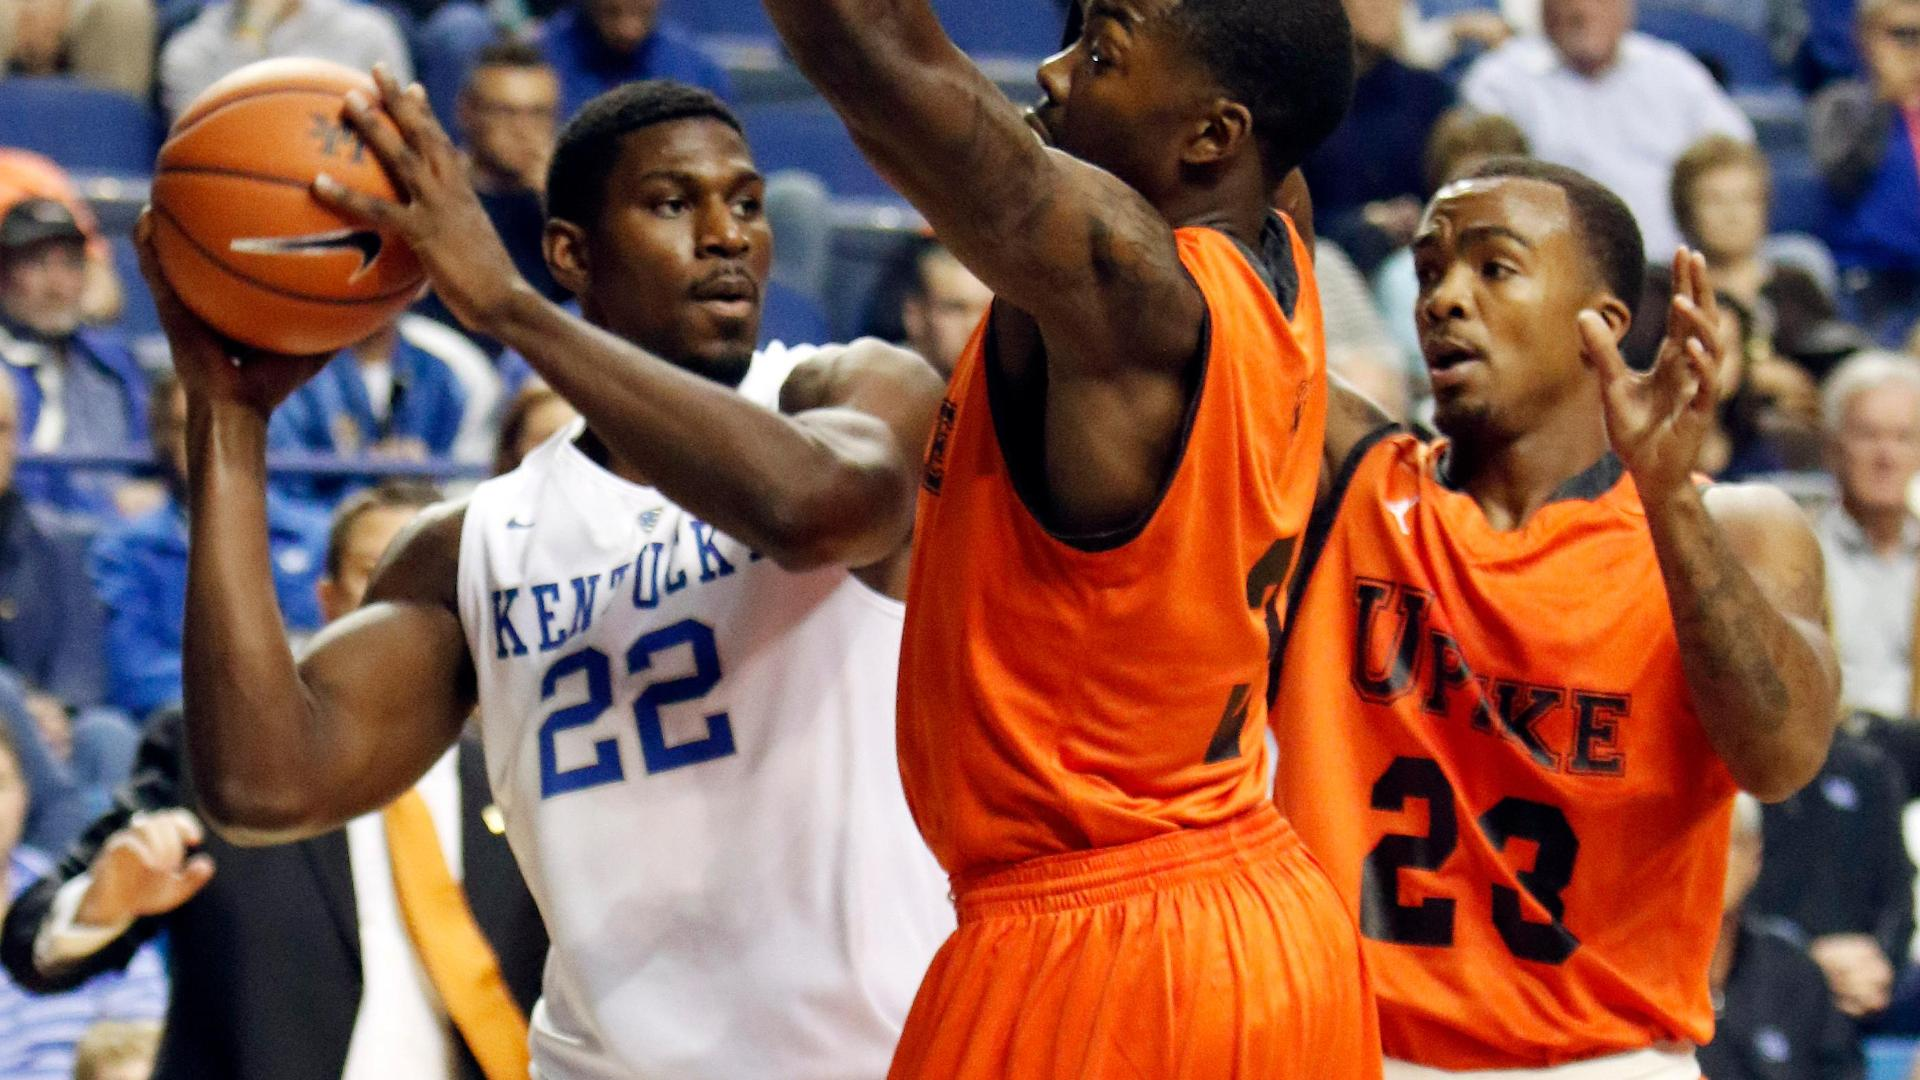 http://a.espncdn.com/media/motion/2014/1212/dm_141212_ncb_greenberg_on_poythress902/dm_141212_ncb_greenberg_on_poythress902.jpg